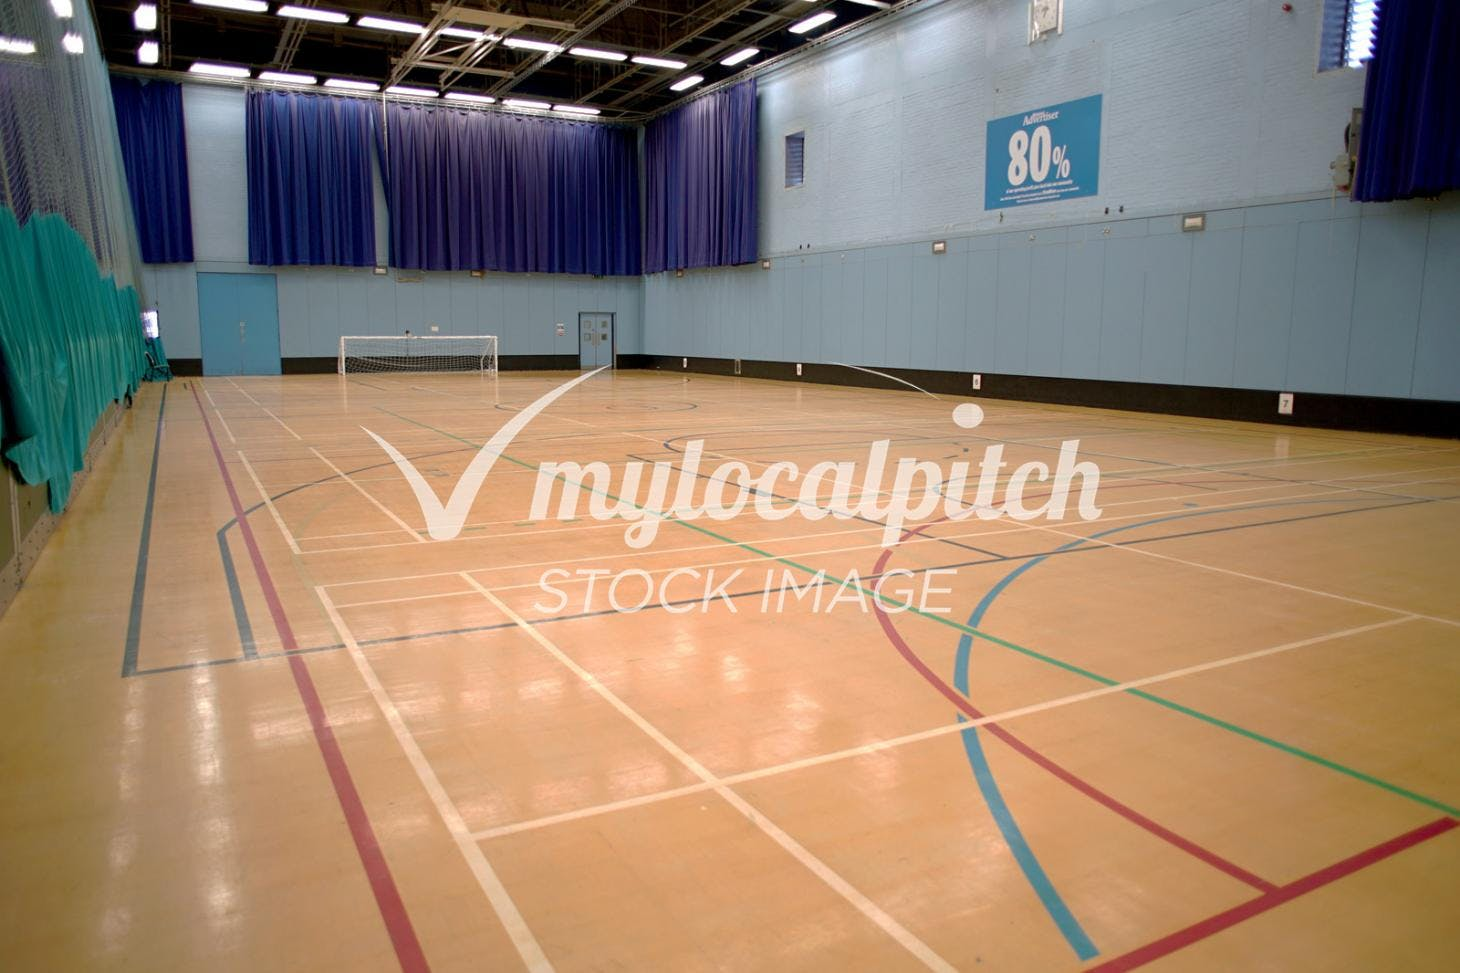 Cabra Parkside Community and Sports Centre 5 a side | Indoor football pitch